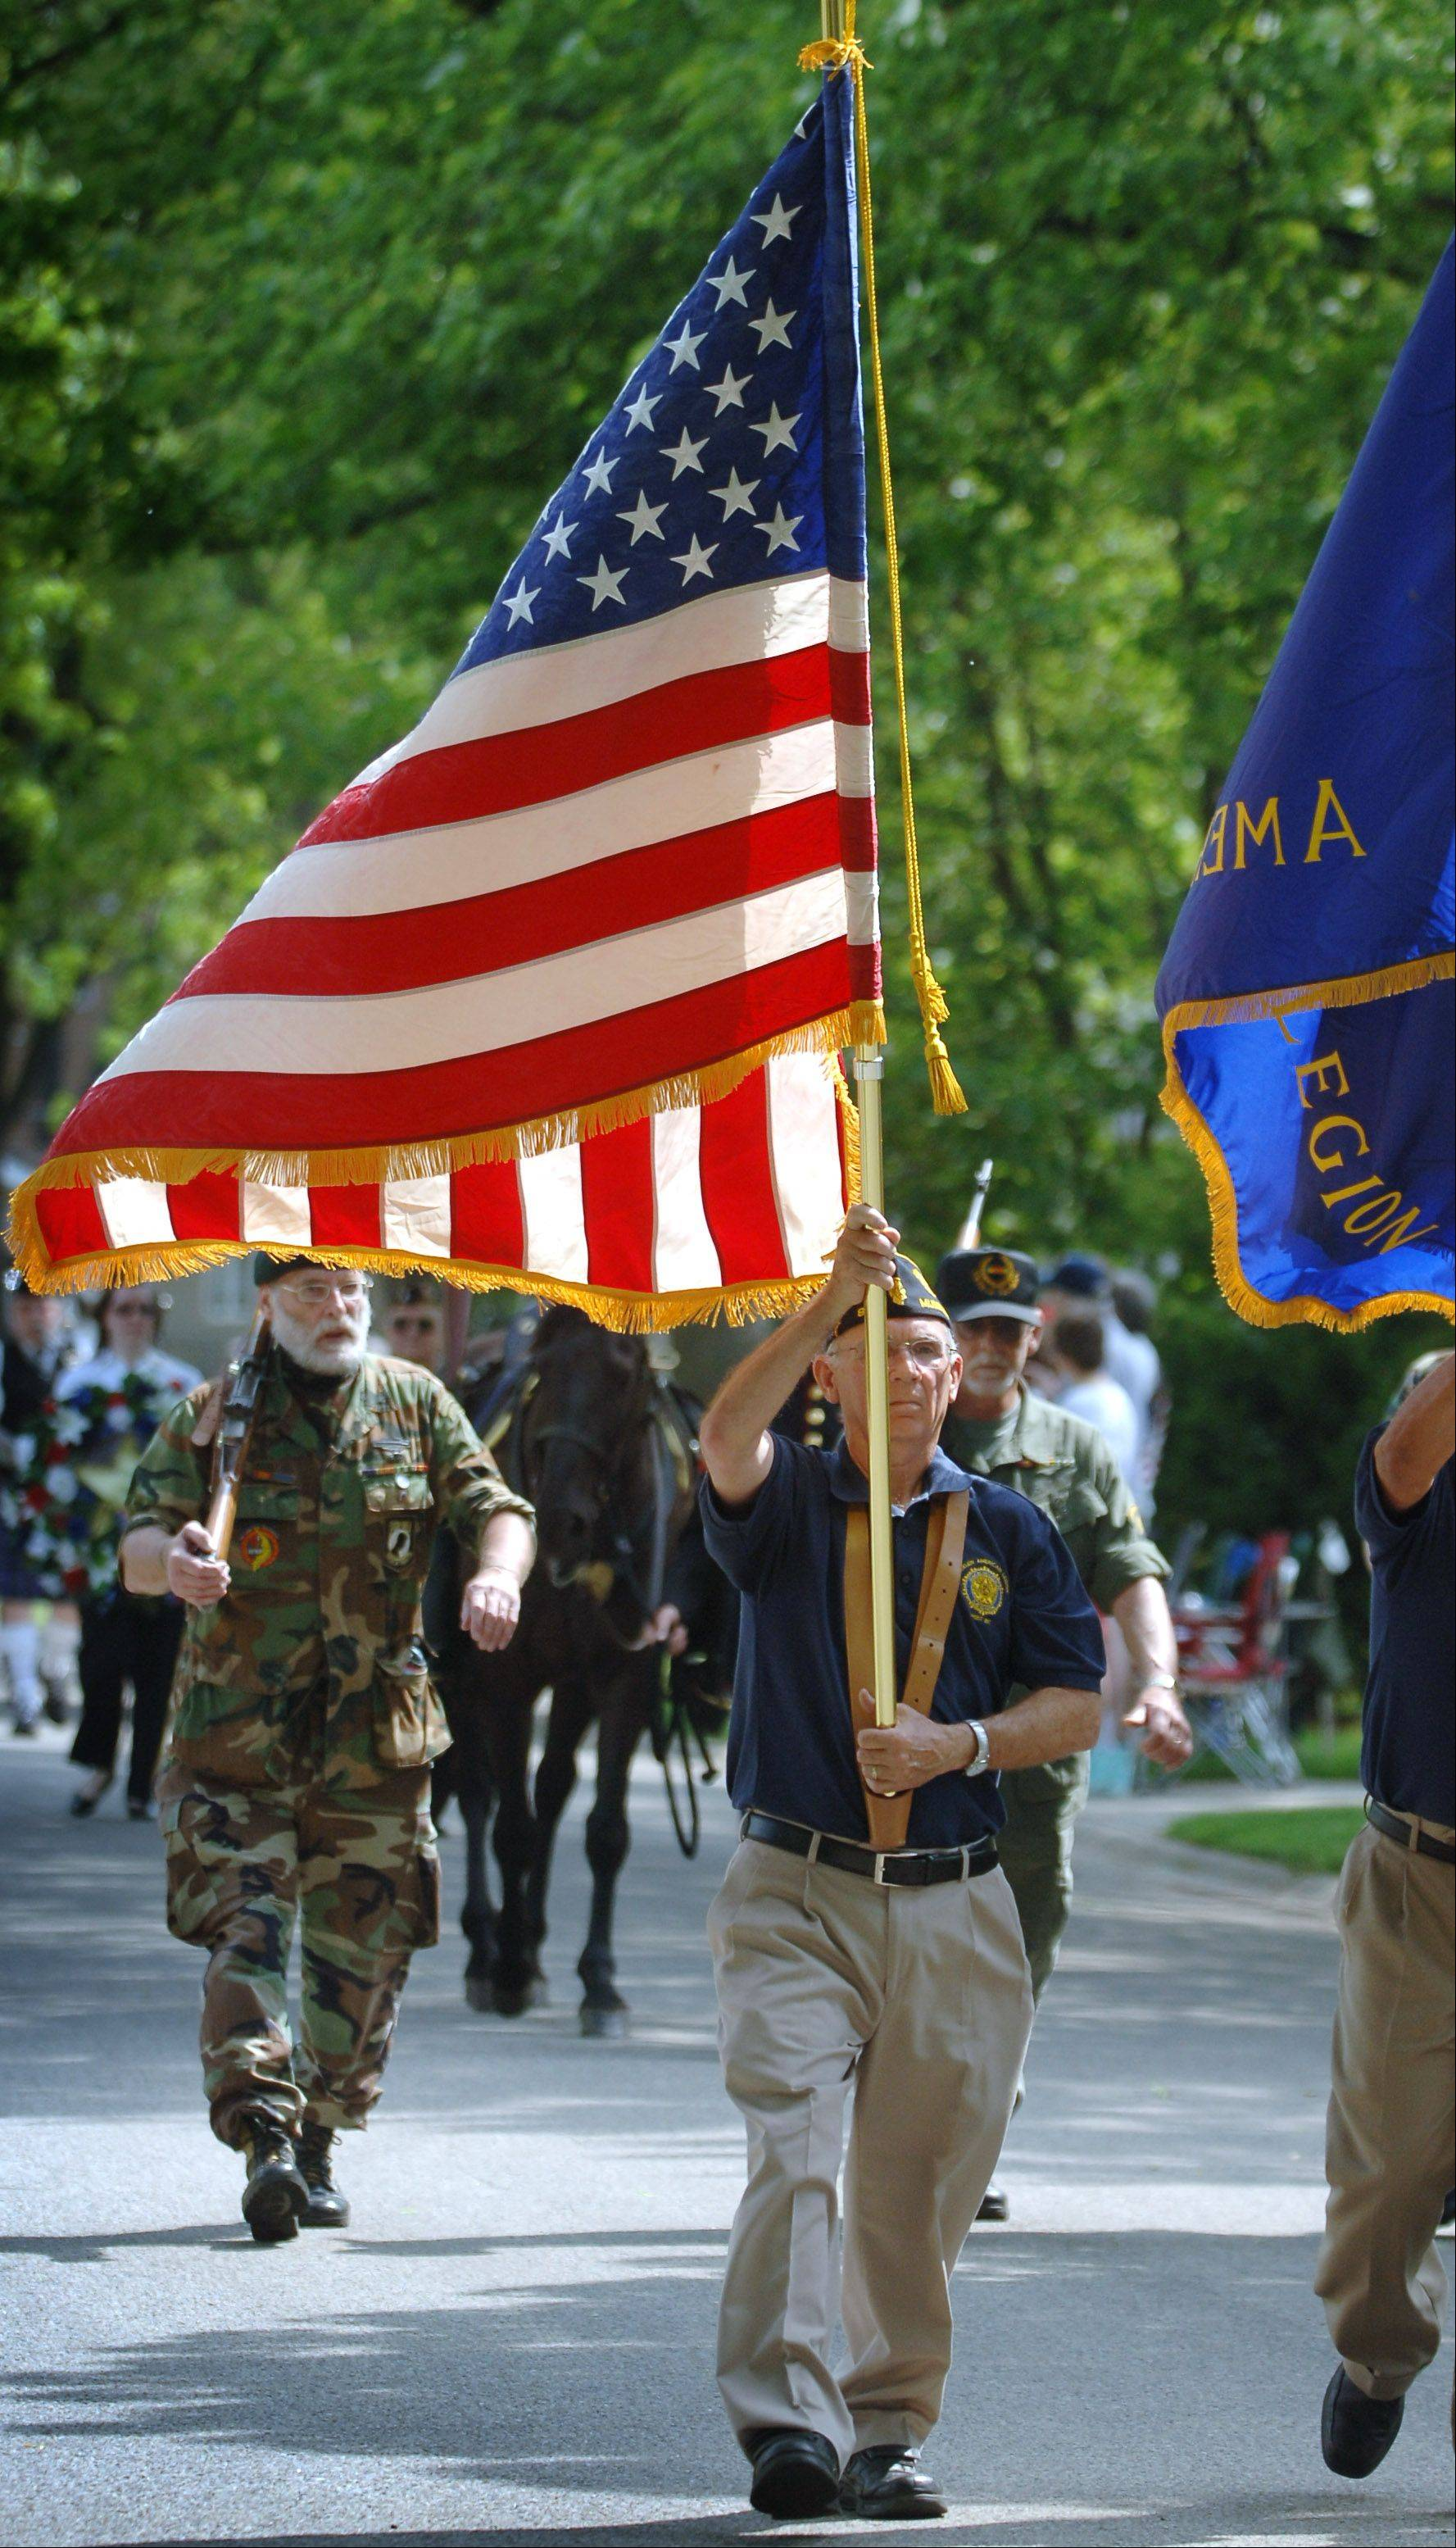 Mundelein's annual Memorial Day parade heads down Pershing Ave. with American Legion Post 867 member Paul Papineau carrying the American Flag.